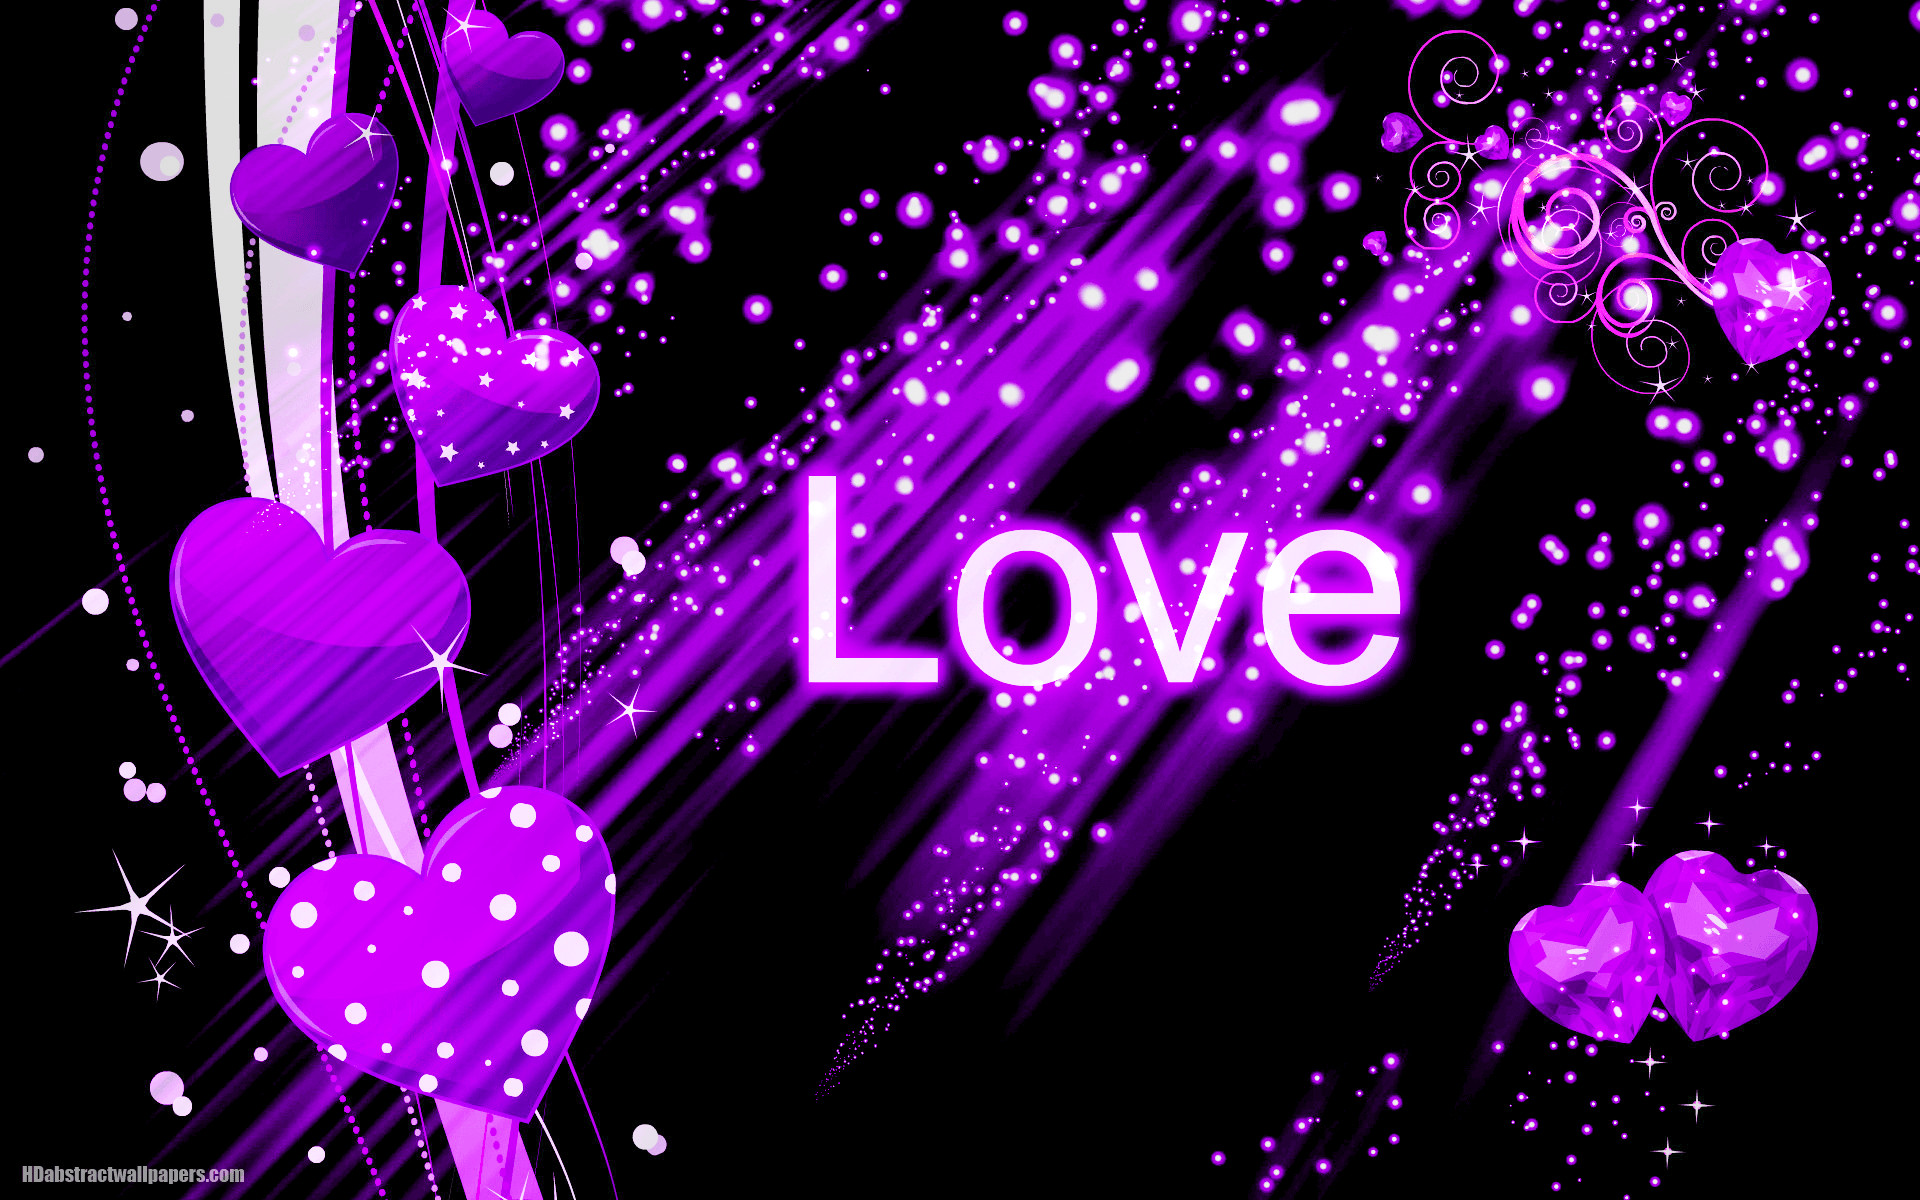 Abstract Rihanna wallpaper with love heart of fire